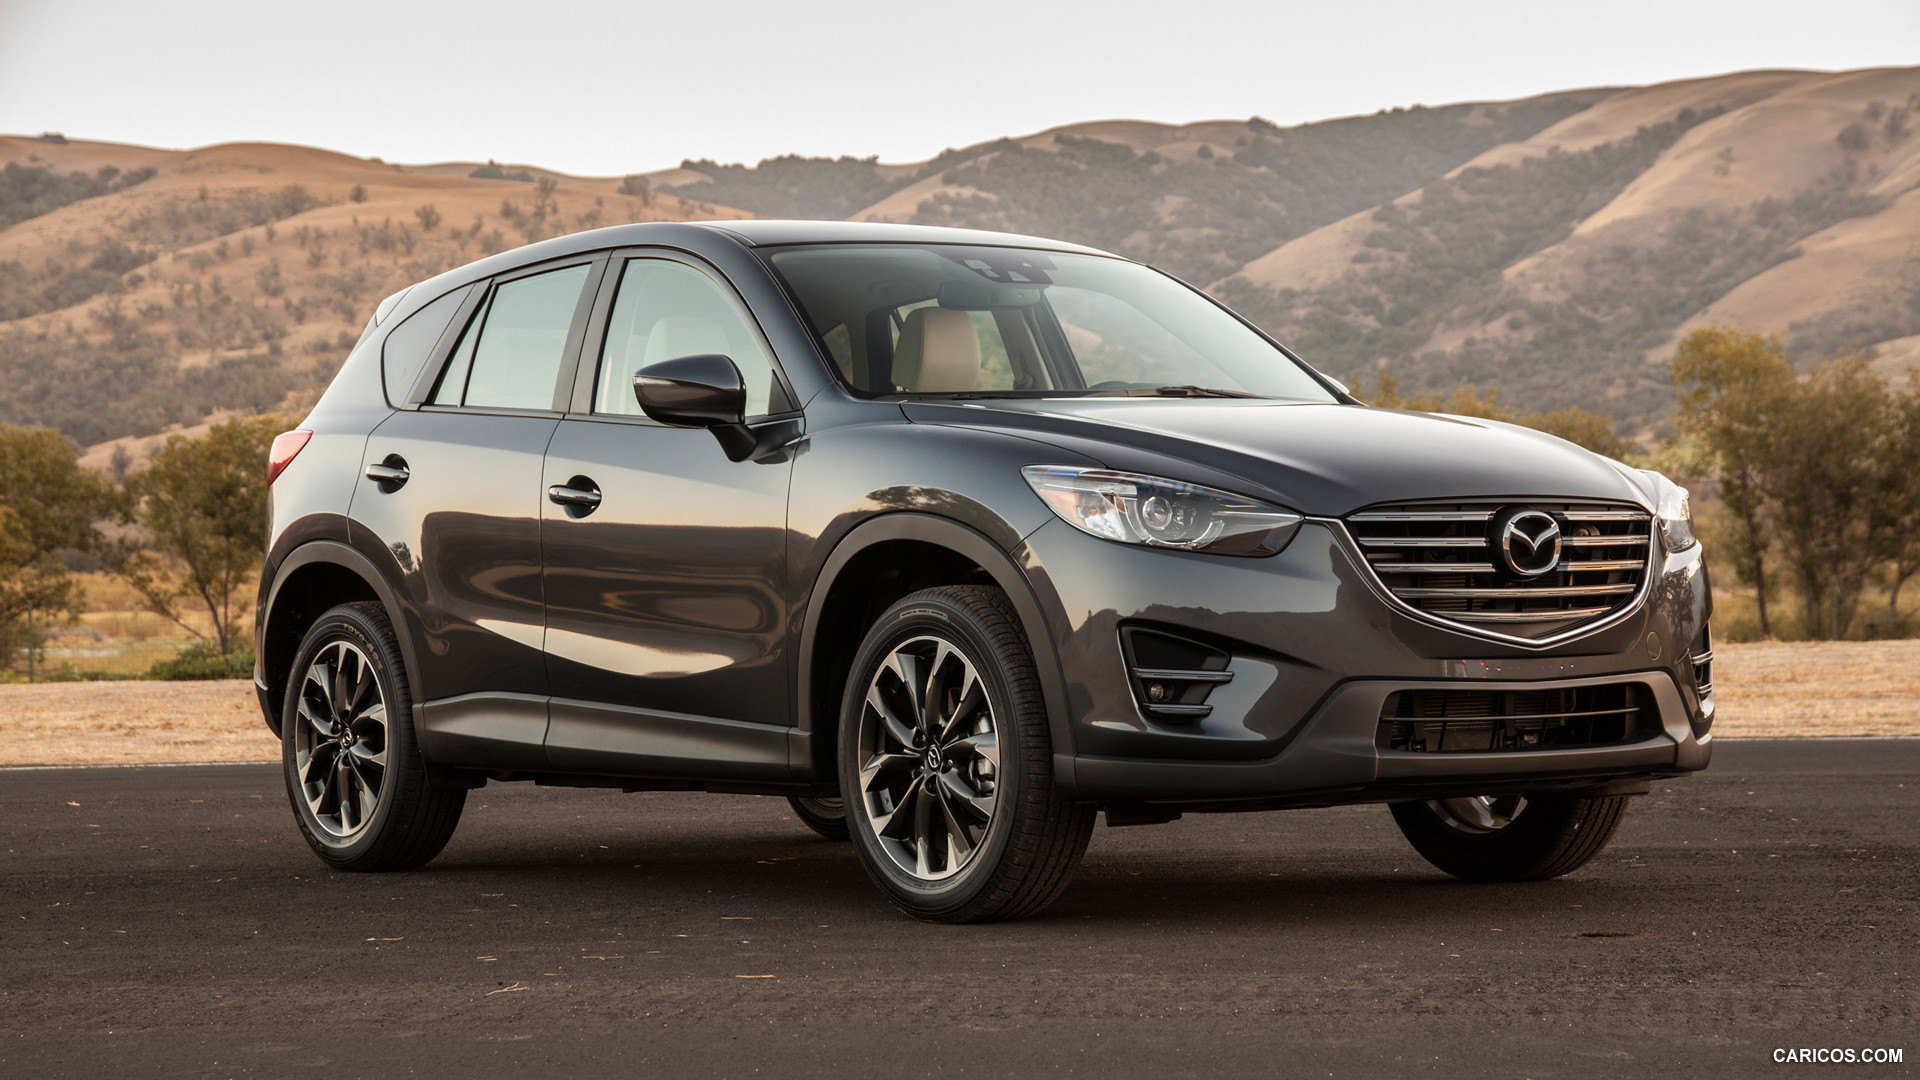 1920x1080 - Mazda CX-5 Wallpapers 26